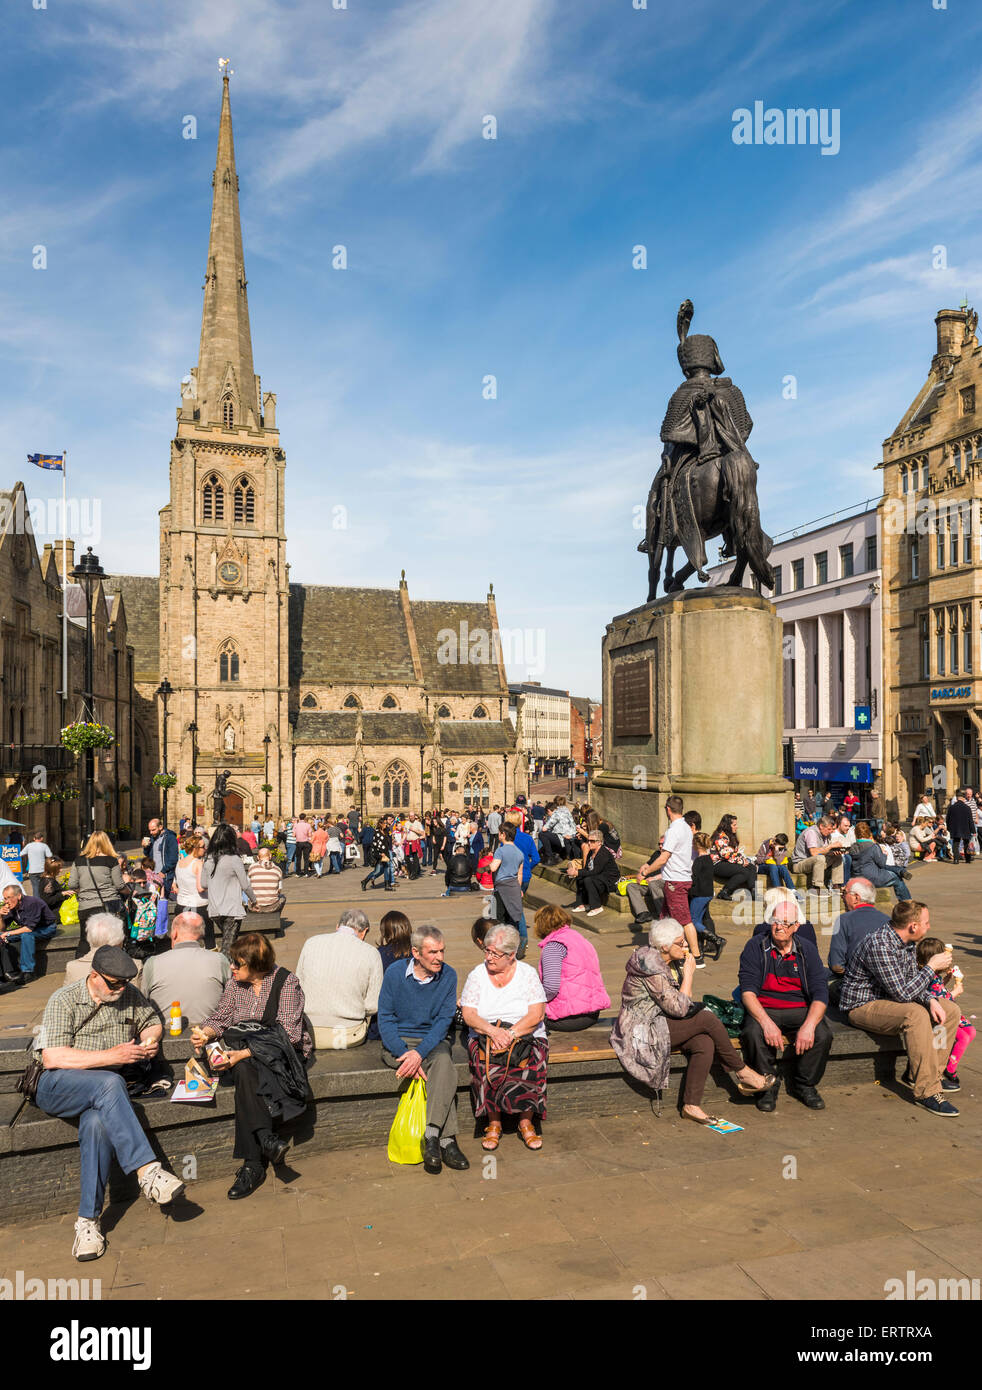 Durham - The Market Place and church of St Nicholas in Durham city center, England, UK, crowded with people shopping - Stock Image